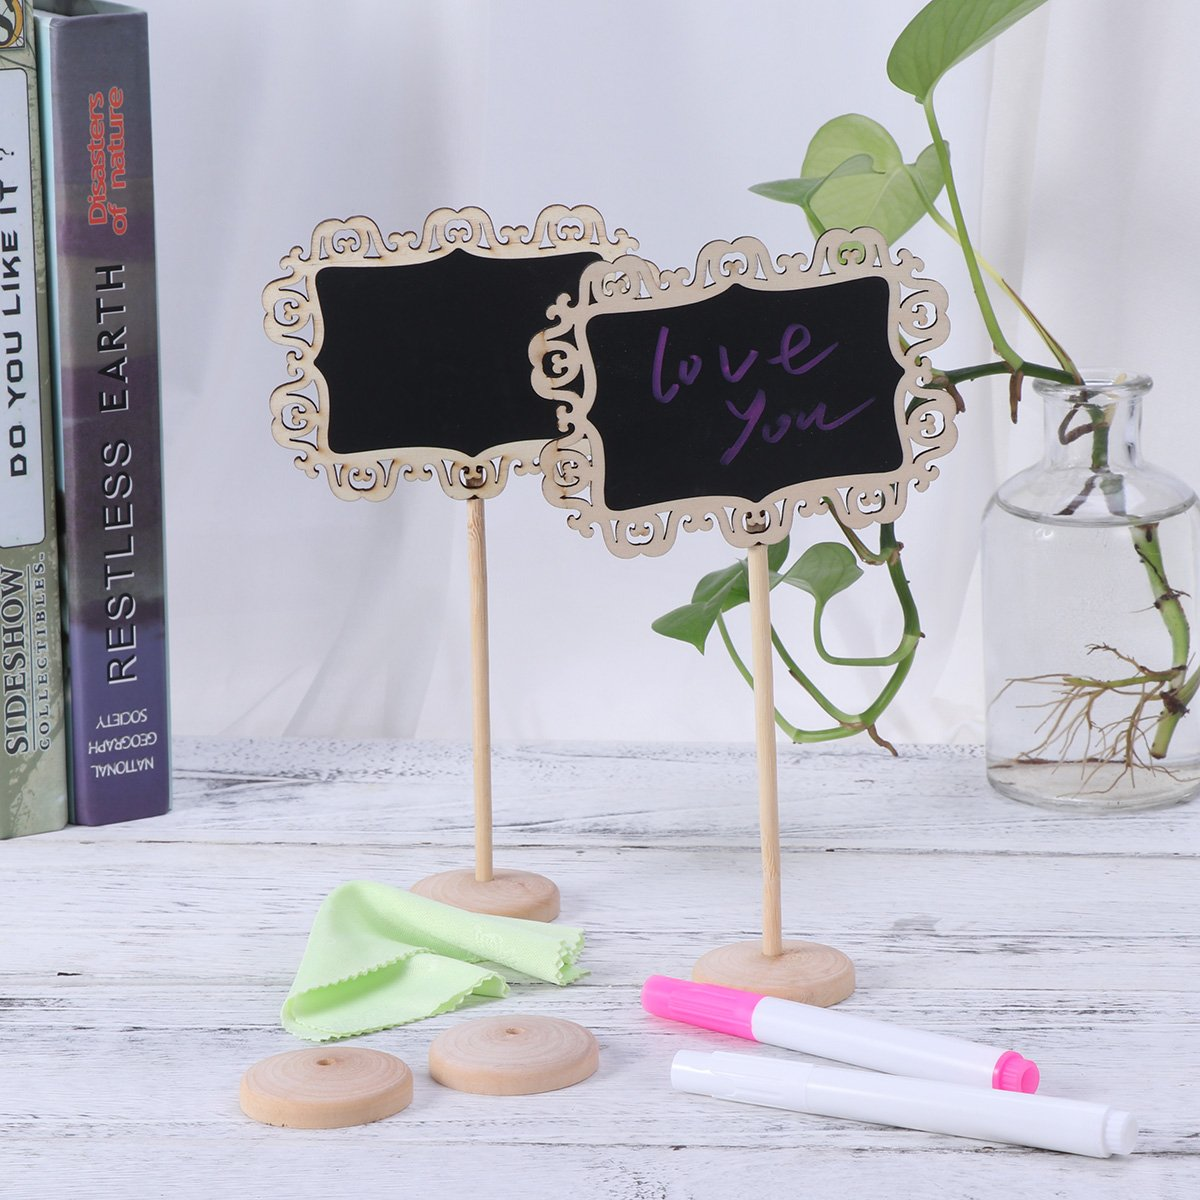 TOYMYTOY 8pcs Mini Wooden Chalkboard with Stand Blackboard Sign Place Holder for Wedding Decoration